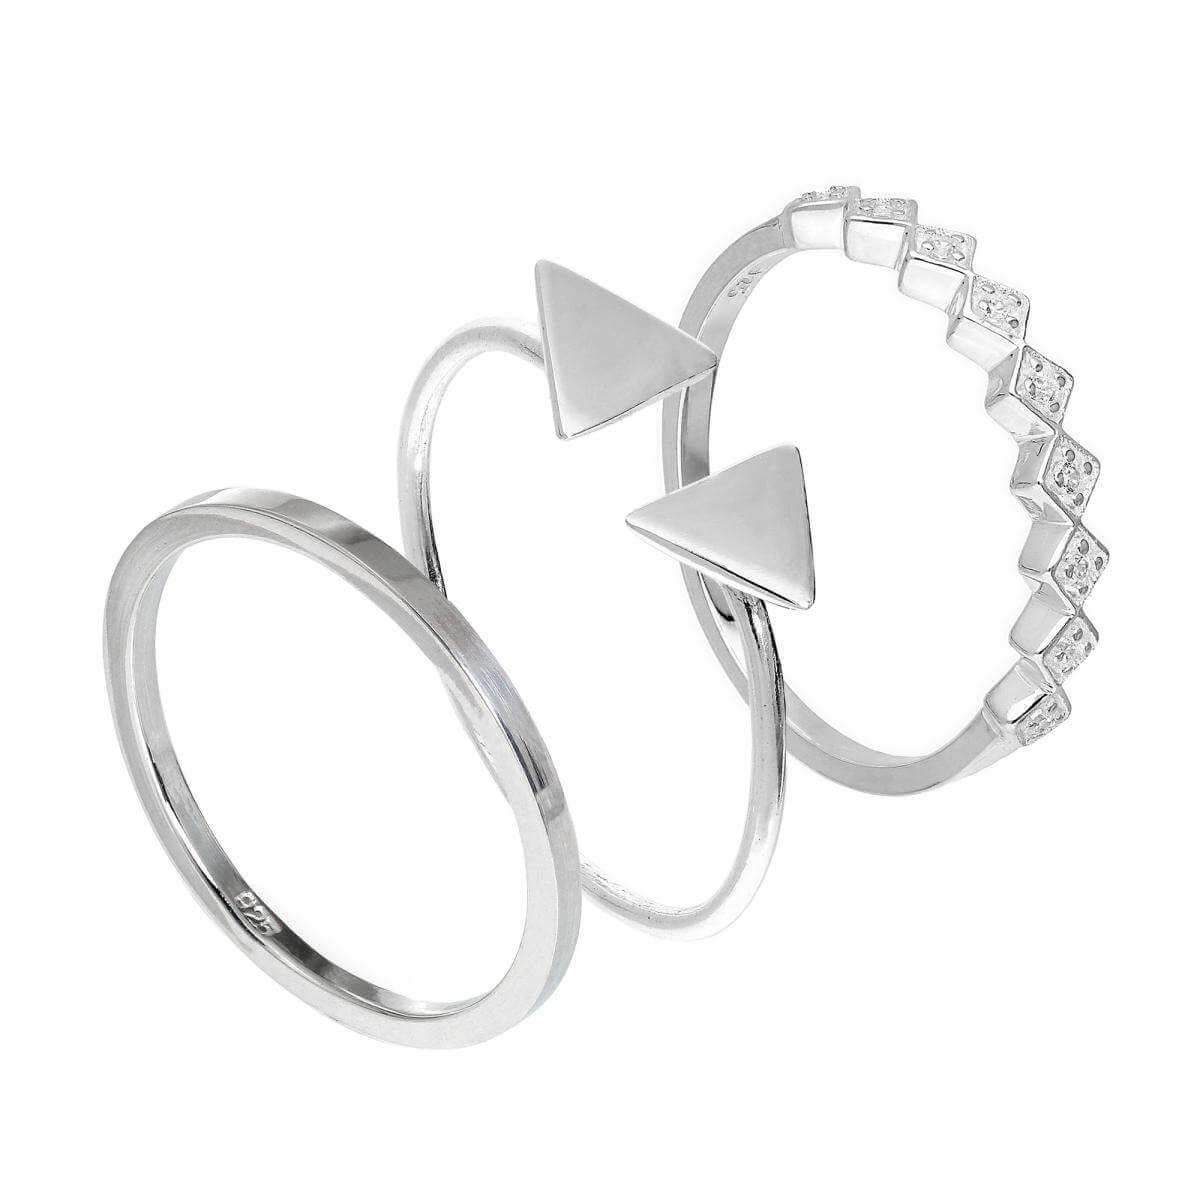 Sterling Silver Triangle CZ Square Geometric Stacking Rings Set